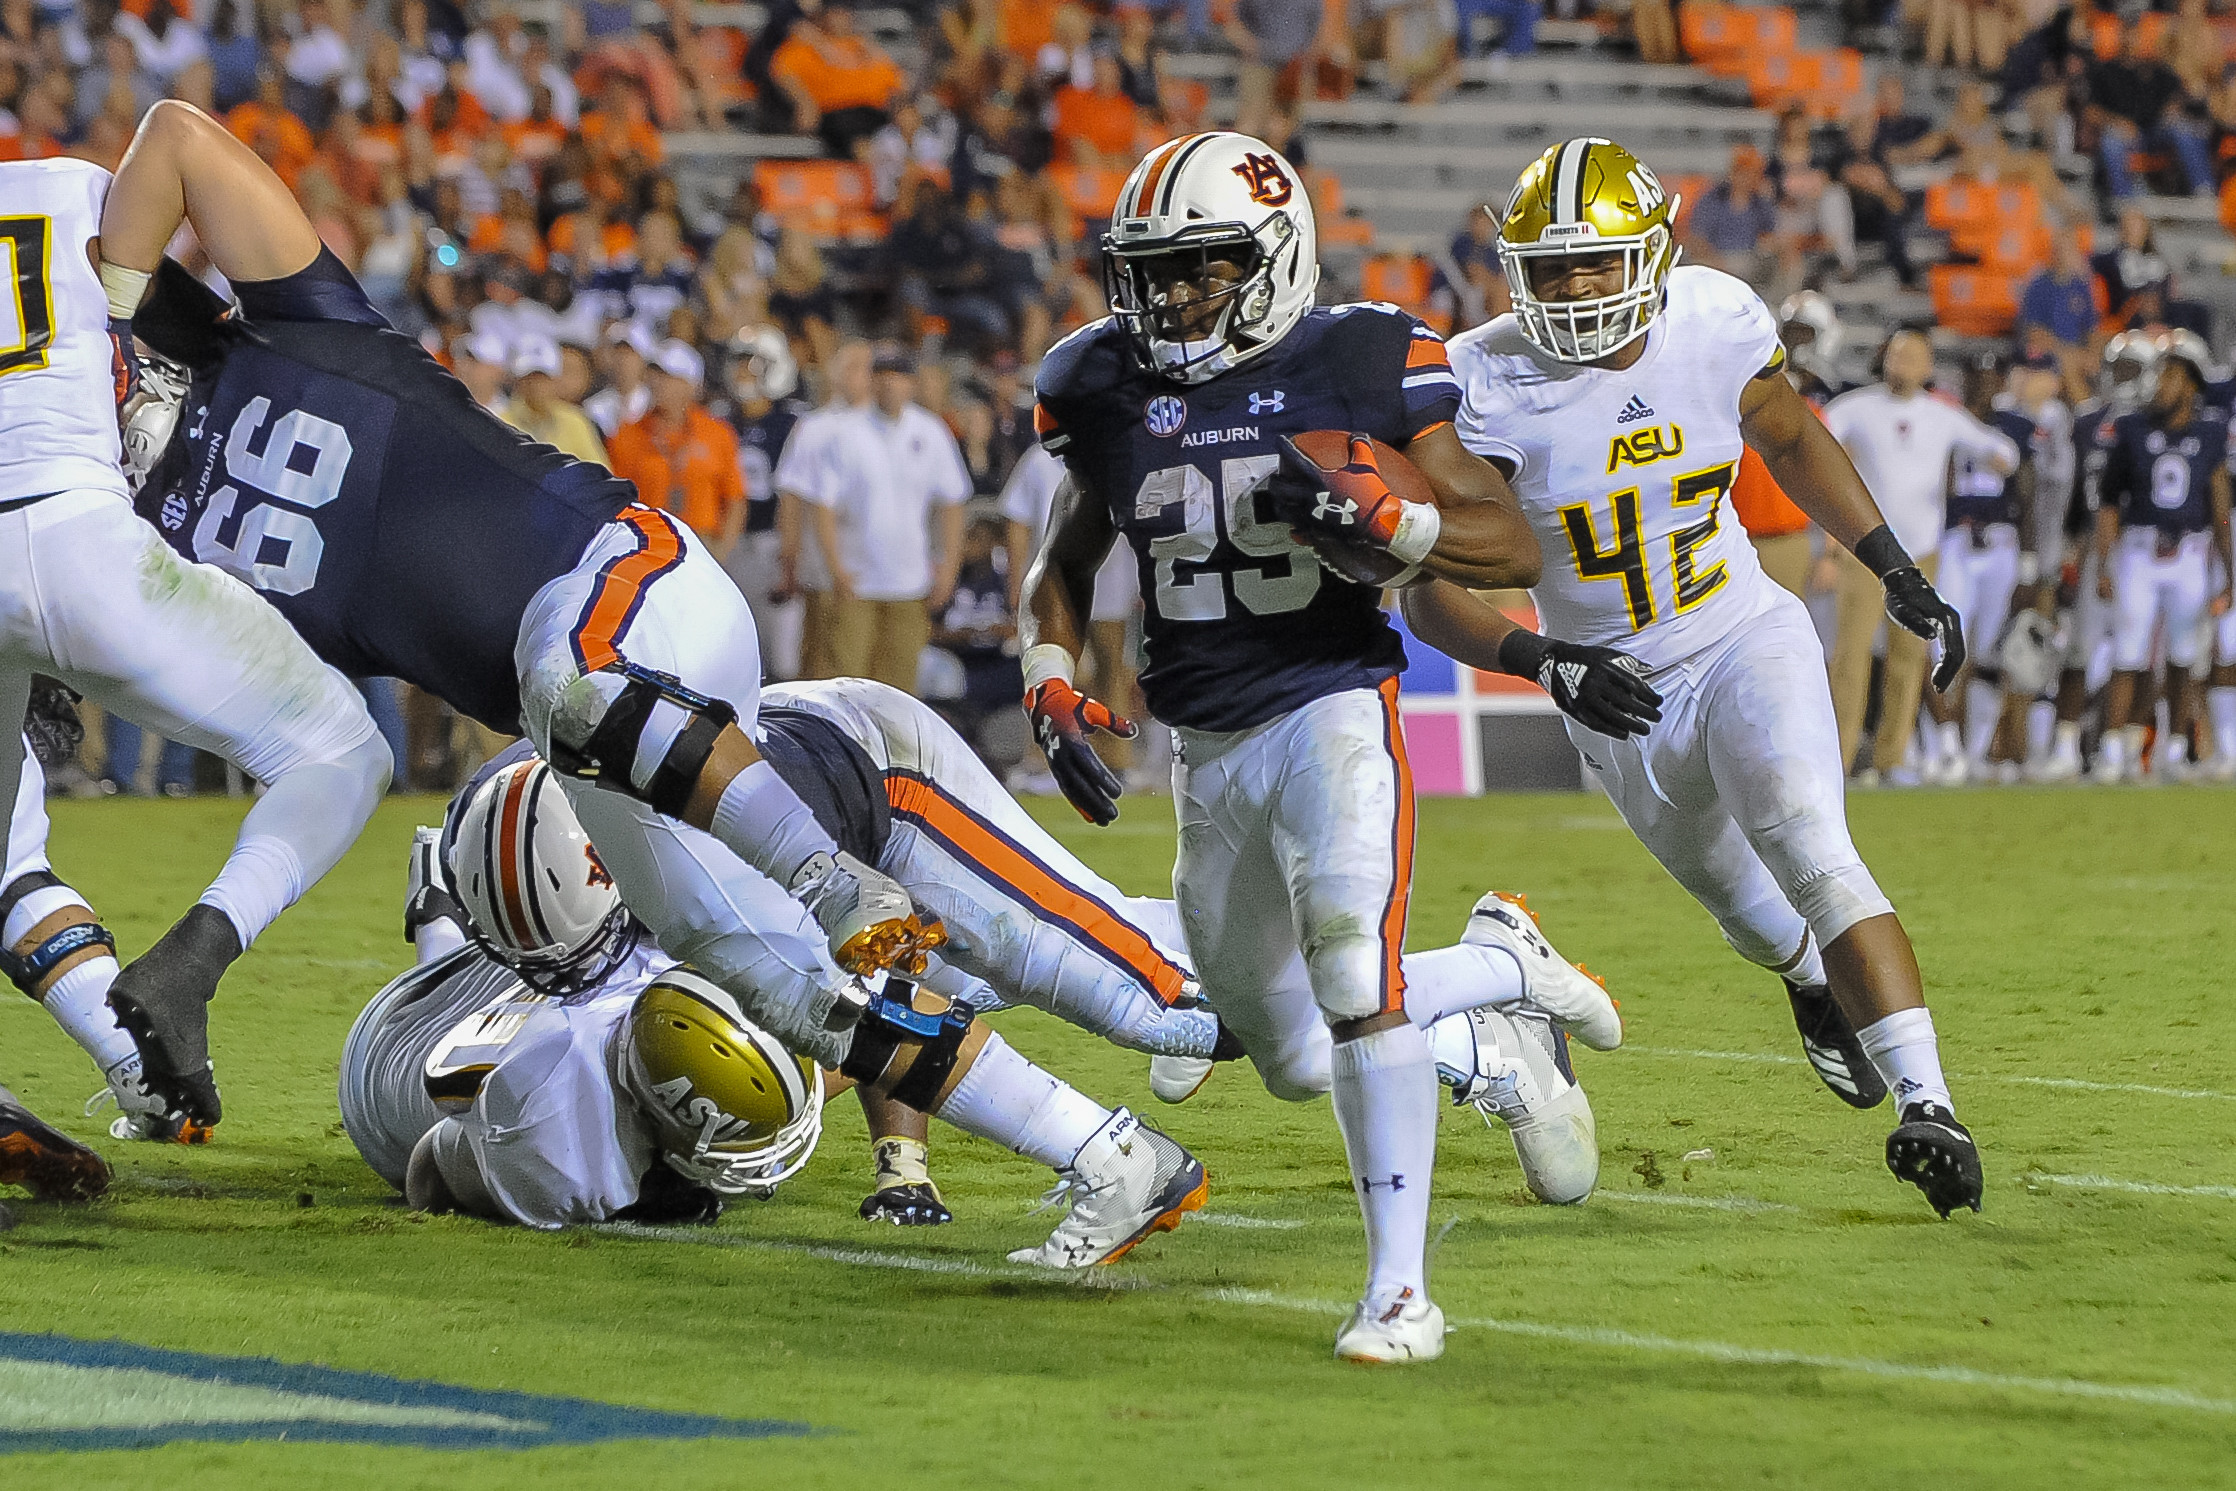 Auburn Tigers running back Shaun Shivers (25) scores a touchdown during the second half of Saturday's game, at Jordan Hare Stadium in Auburn Atlanta. (Contributed by Jeff Johnsey)